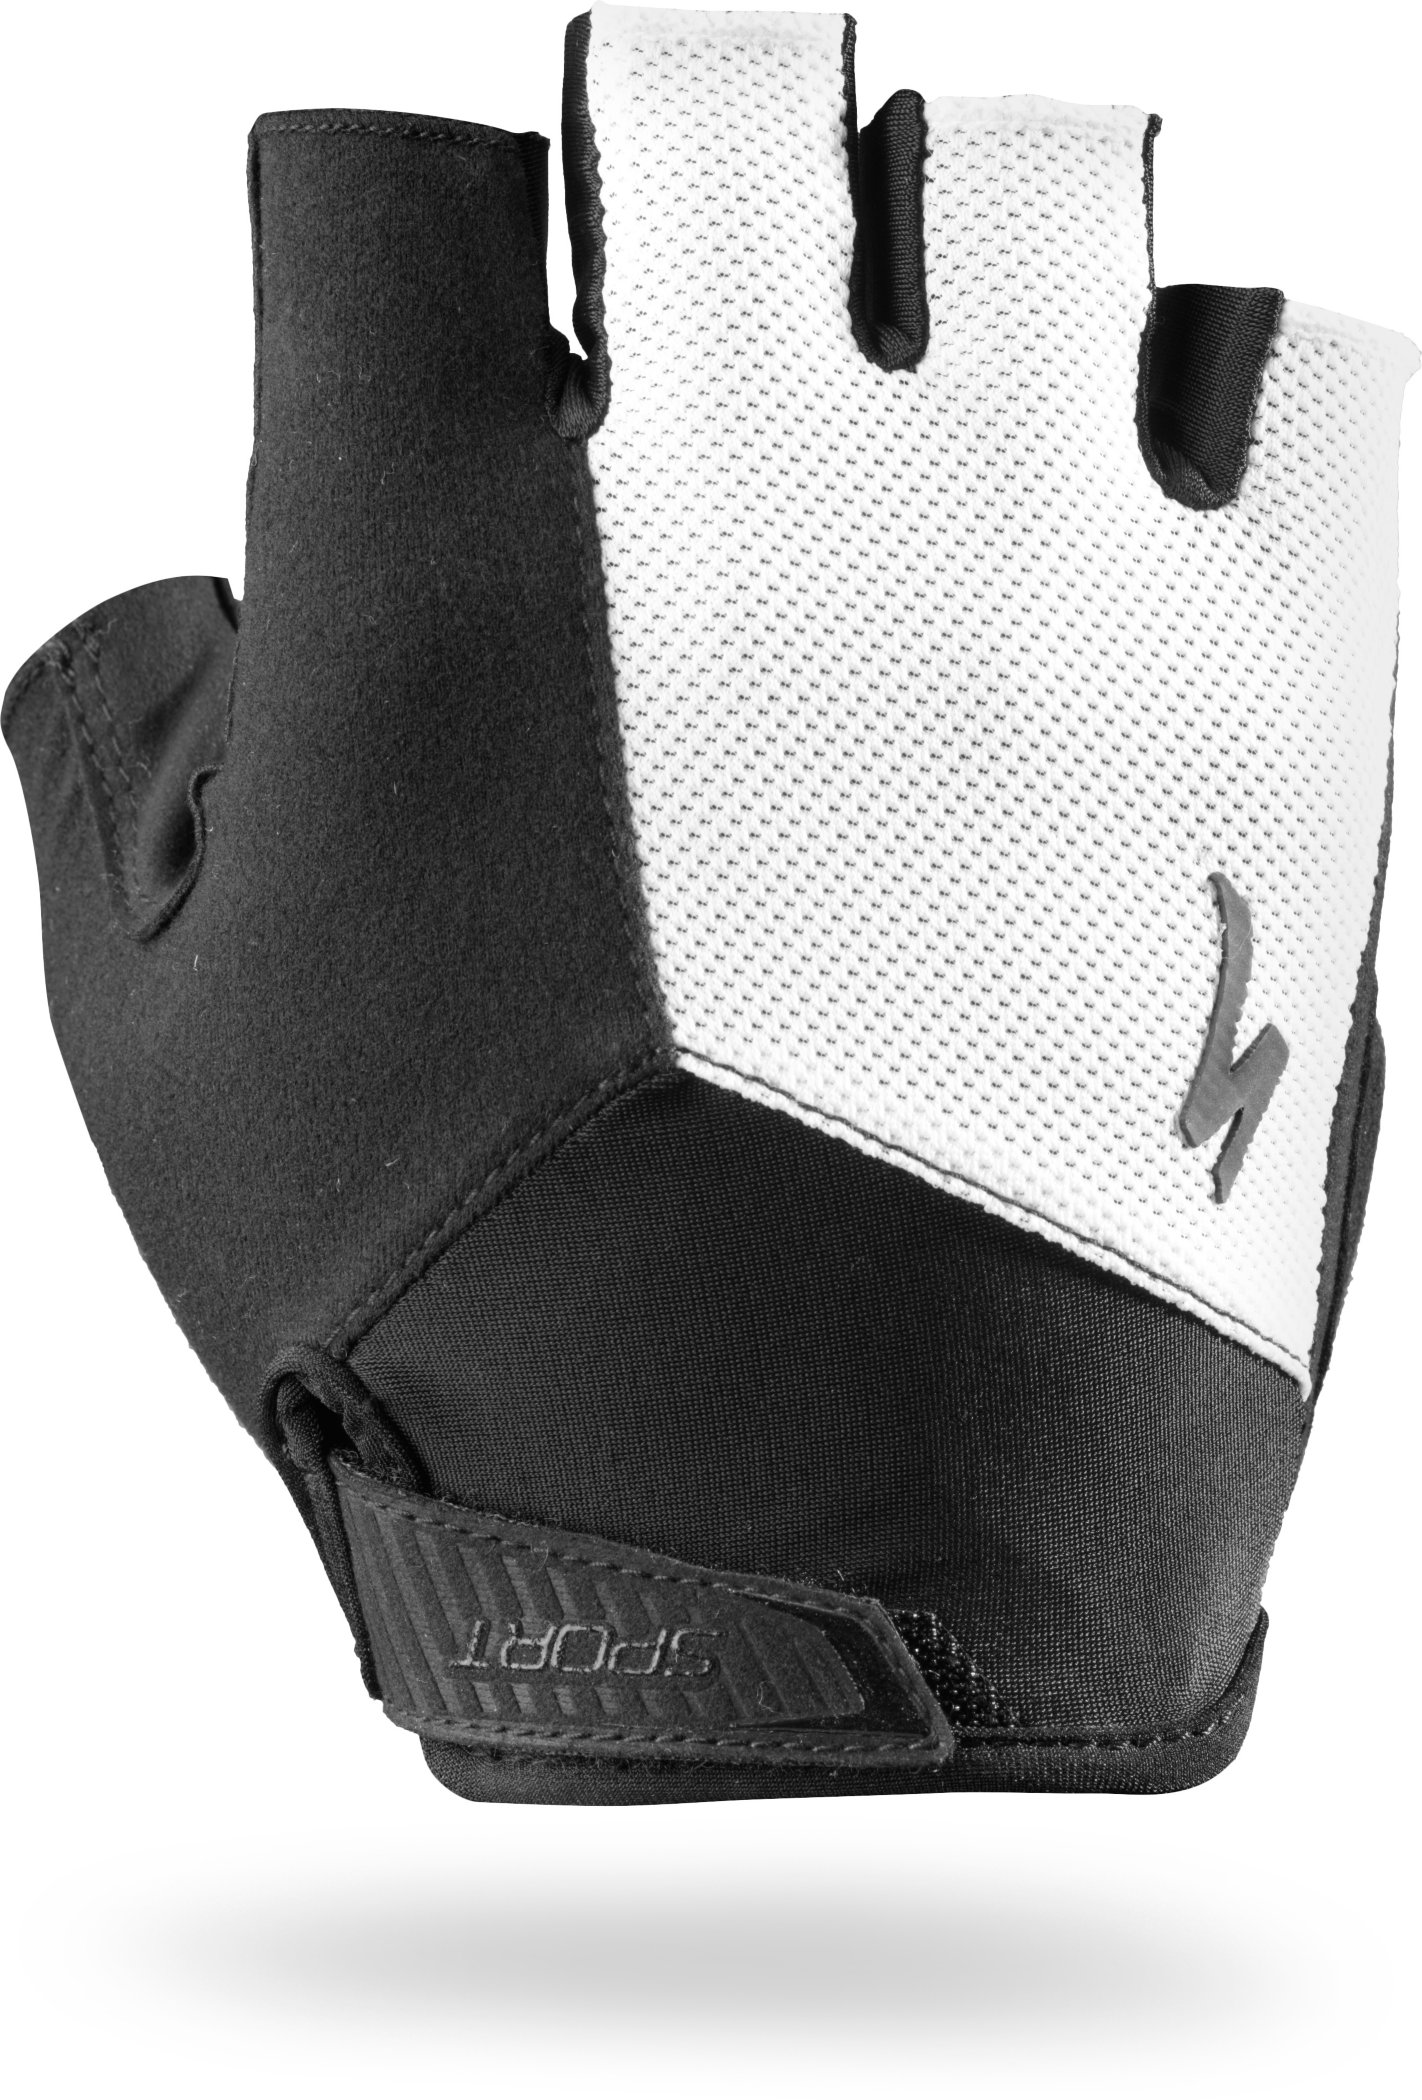 SPECIALIZED BG SPORT GLOVE SF BLK/WHT S - Bikedreams & Dustbikes